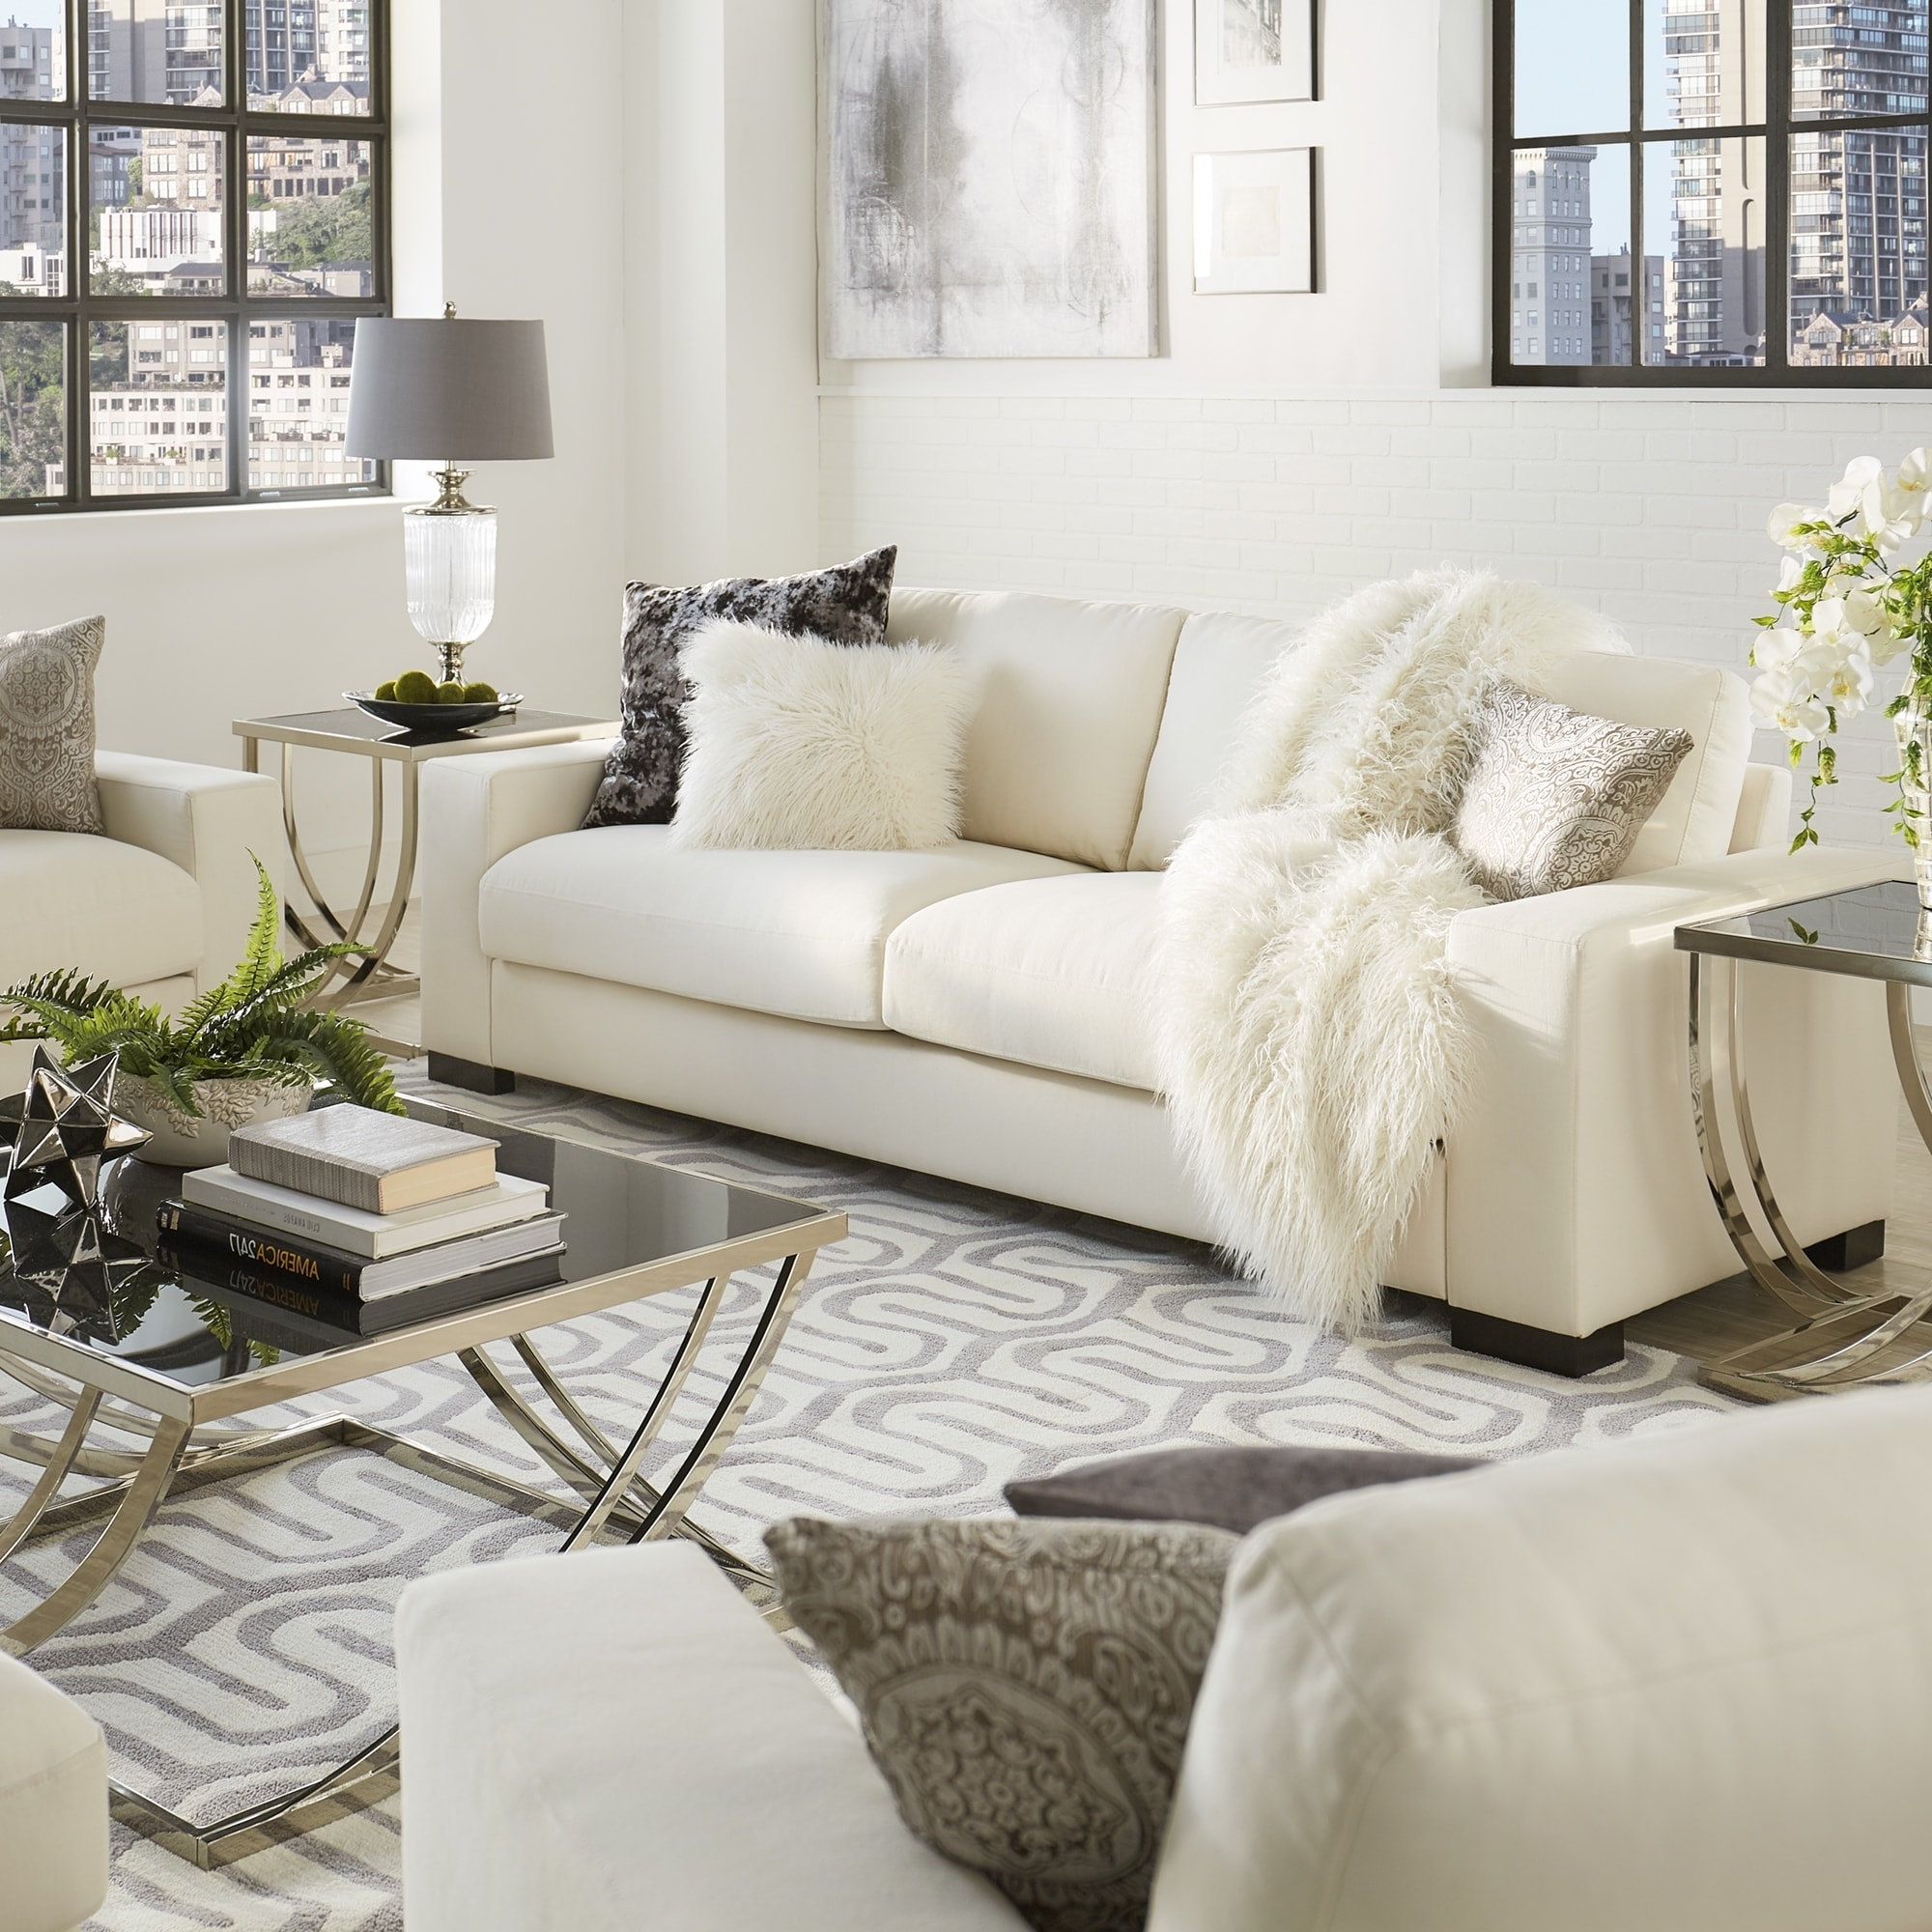 Lionel Modern White Fabric Down Filled Sofainspire Q Artisan Throughout Favorite Down Filled Sofas (View 9 of 15)